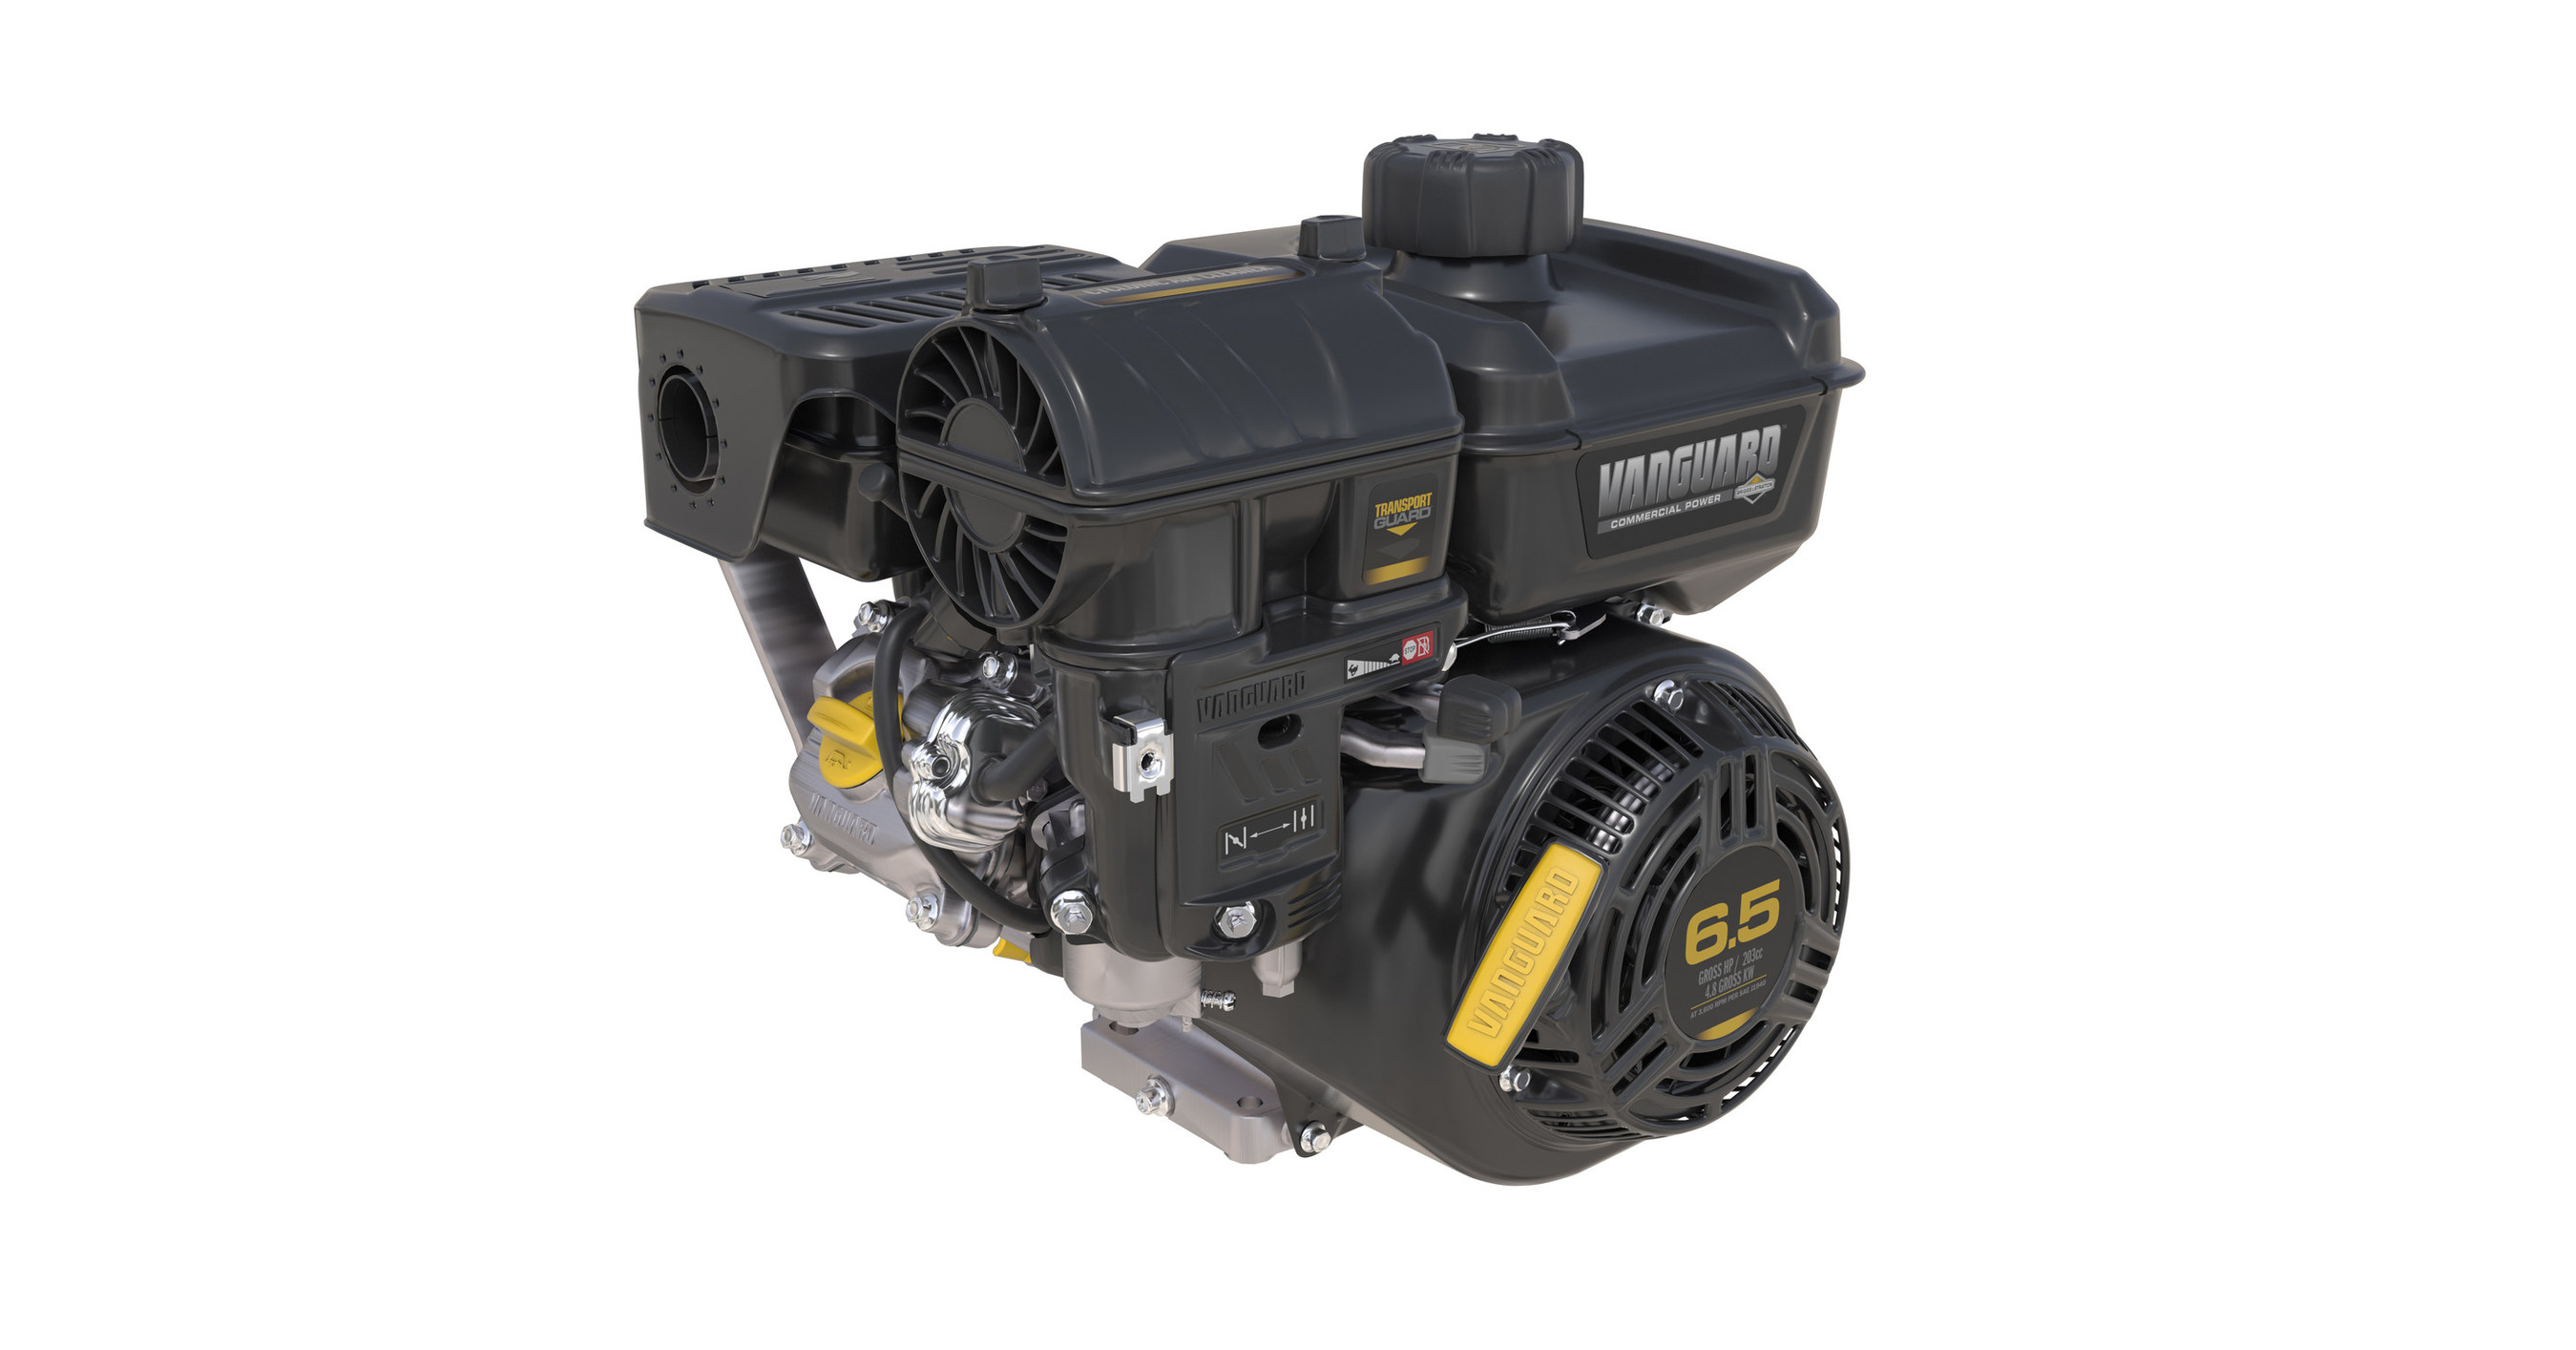 Vanguard™ Launches New Line Of Global Single Cylinder Engines